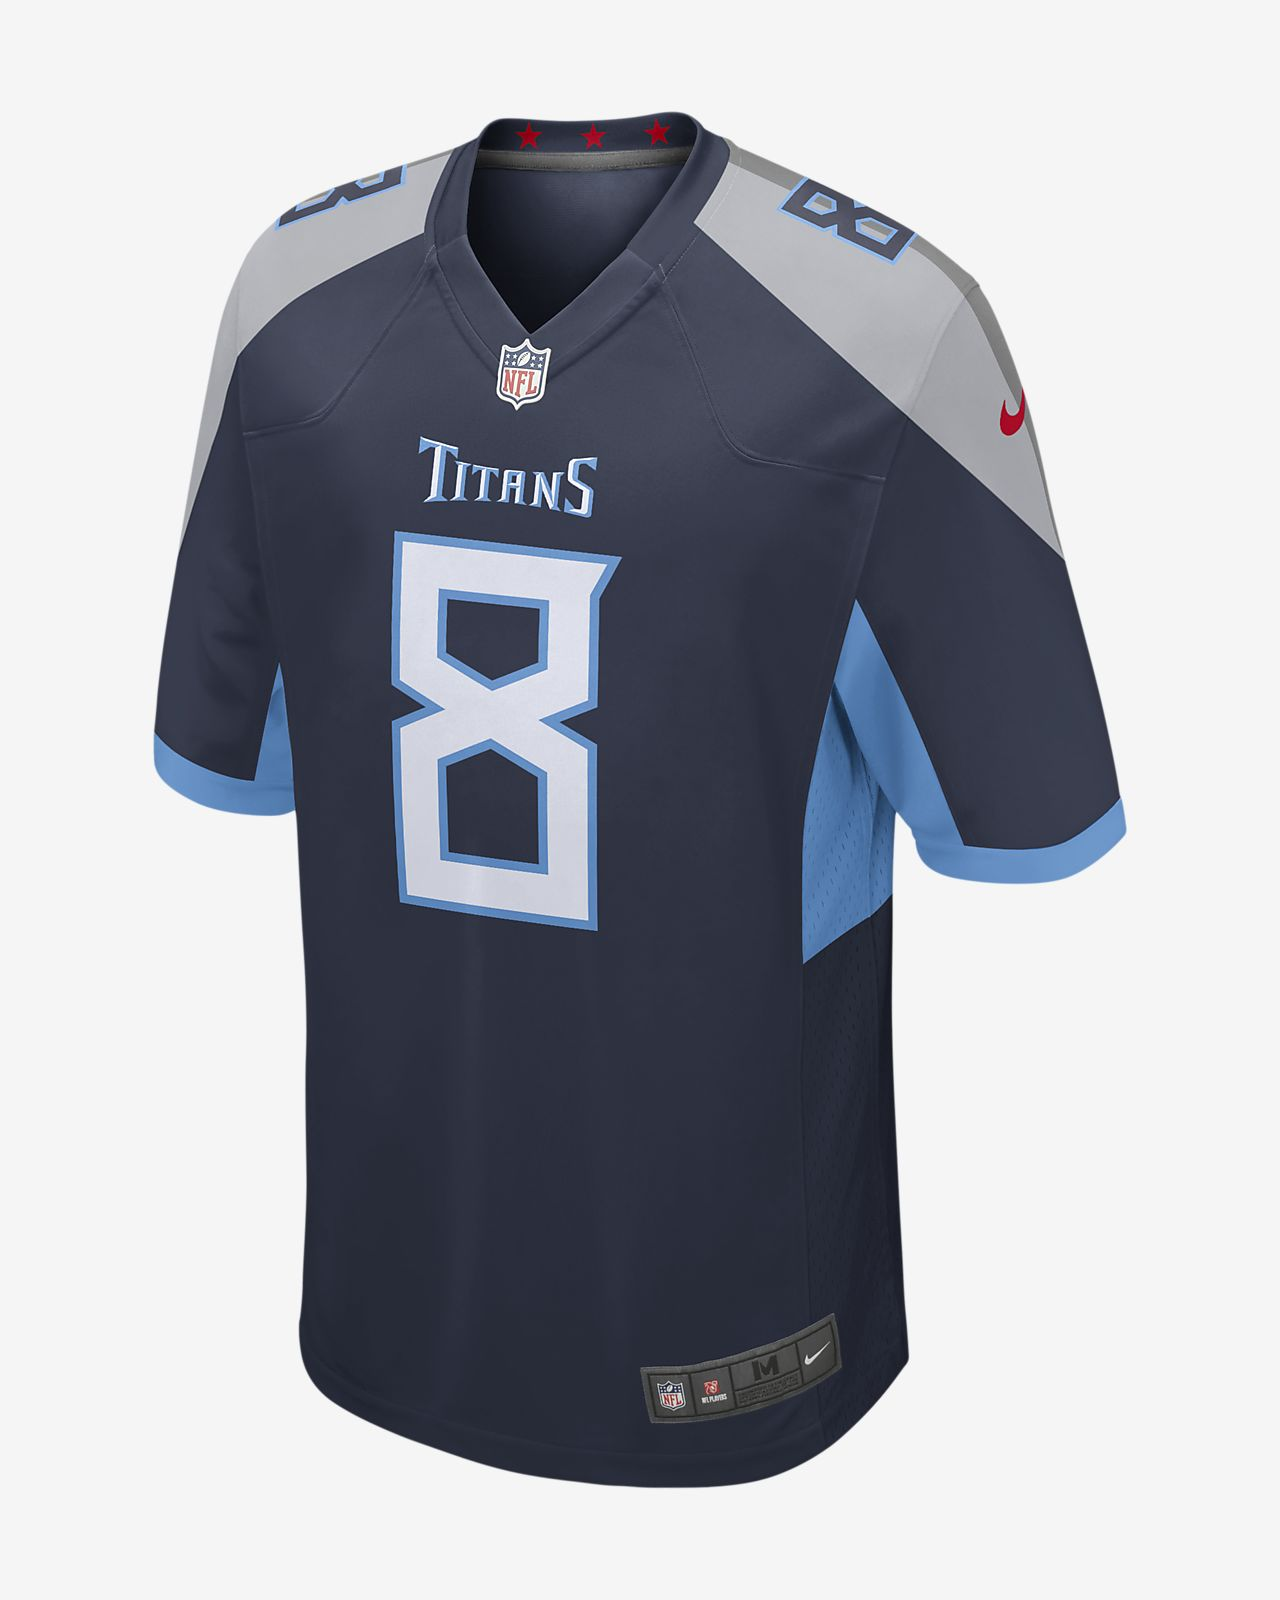 NFL Tennessee Titans Game Jersey (Marcus Mariota) American-Football-Herrentrikot